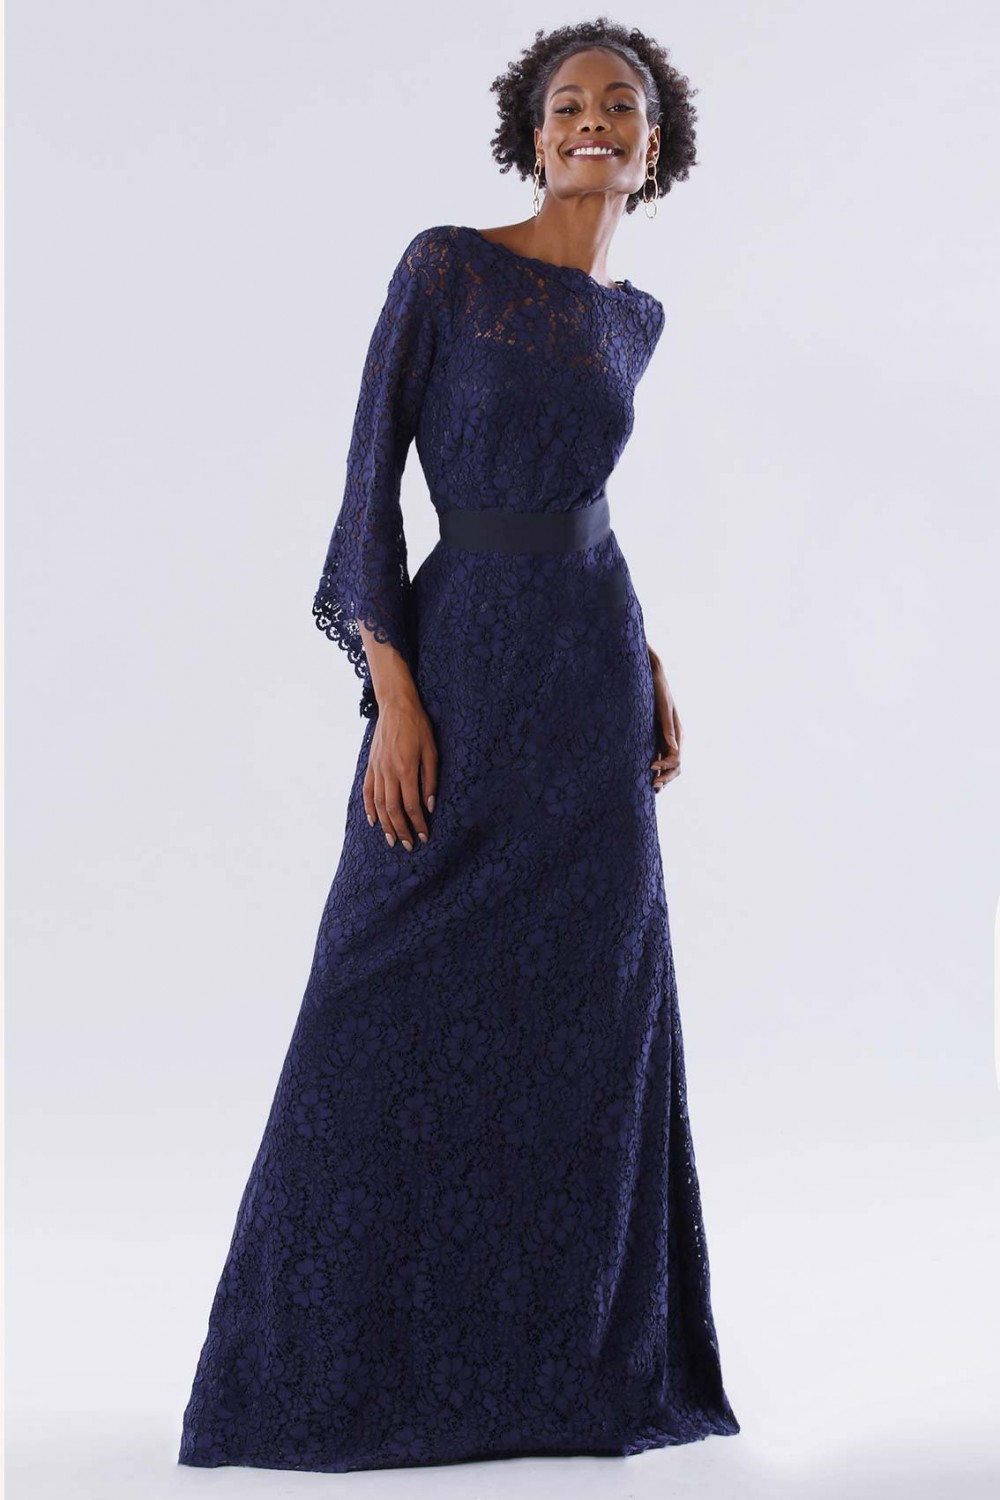 Blue lace dress with long sleeves